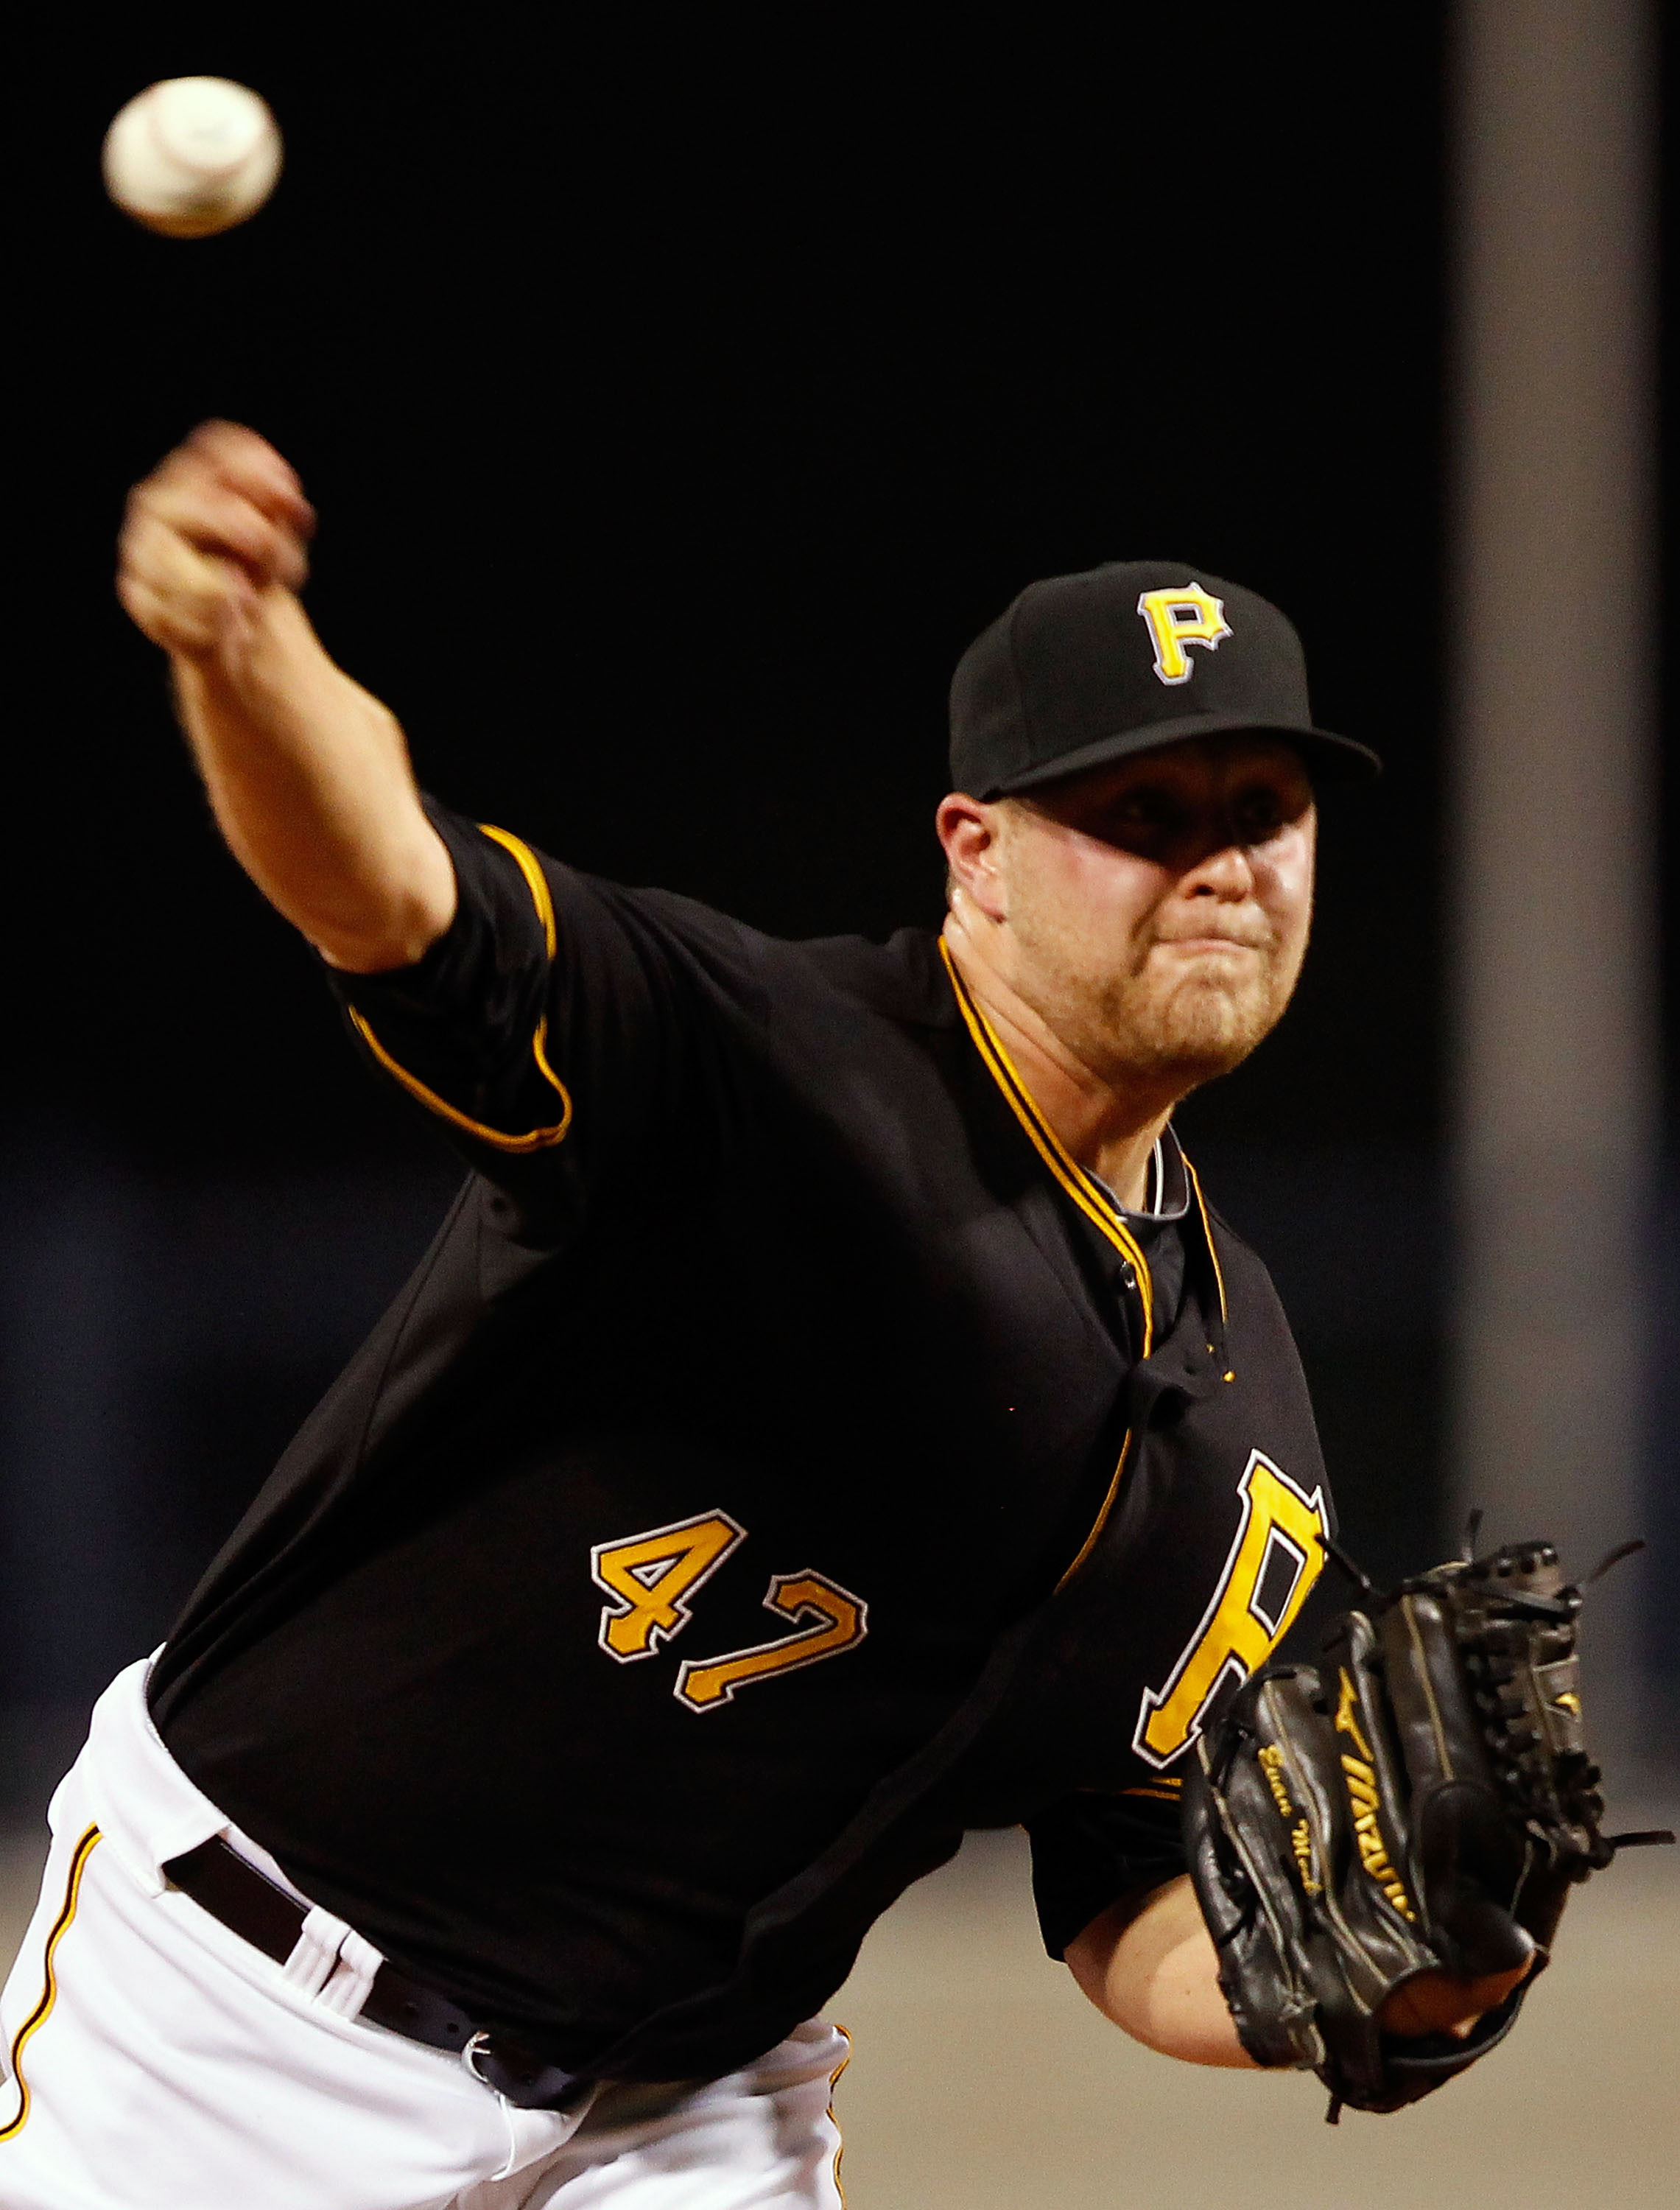 PITTSBURGH - SEPTEMBER 21:  Evan Meek #47 of the Pittsburgh Pirates pitches against the St Louis Cardinals during the game on September 21, 2010 at PNC Park in Pittsburgh, Pennsylvania.  (Photo by Jared Wickerham/Getty Images)